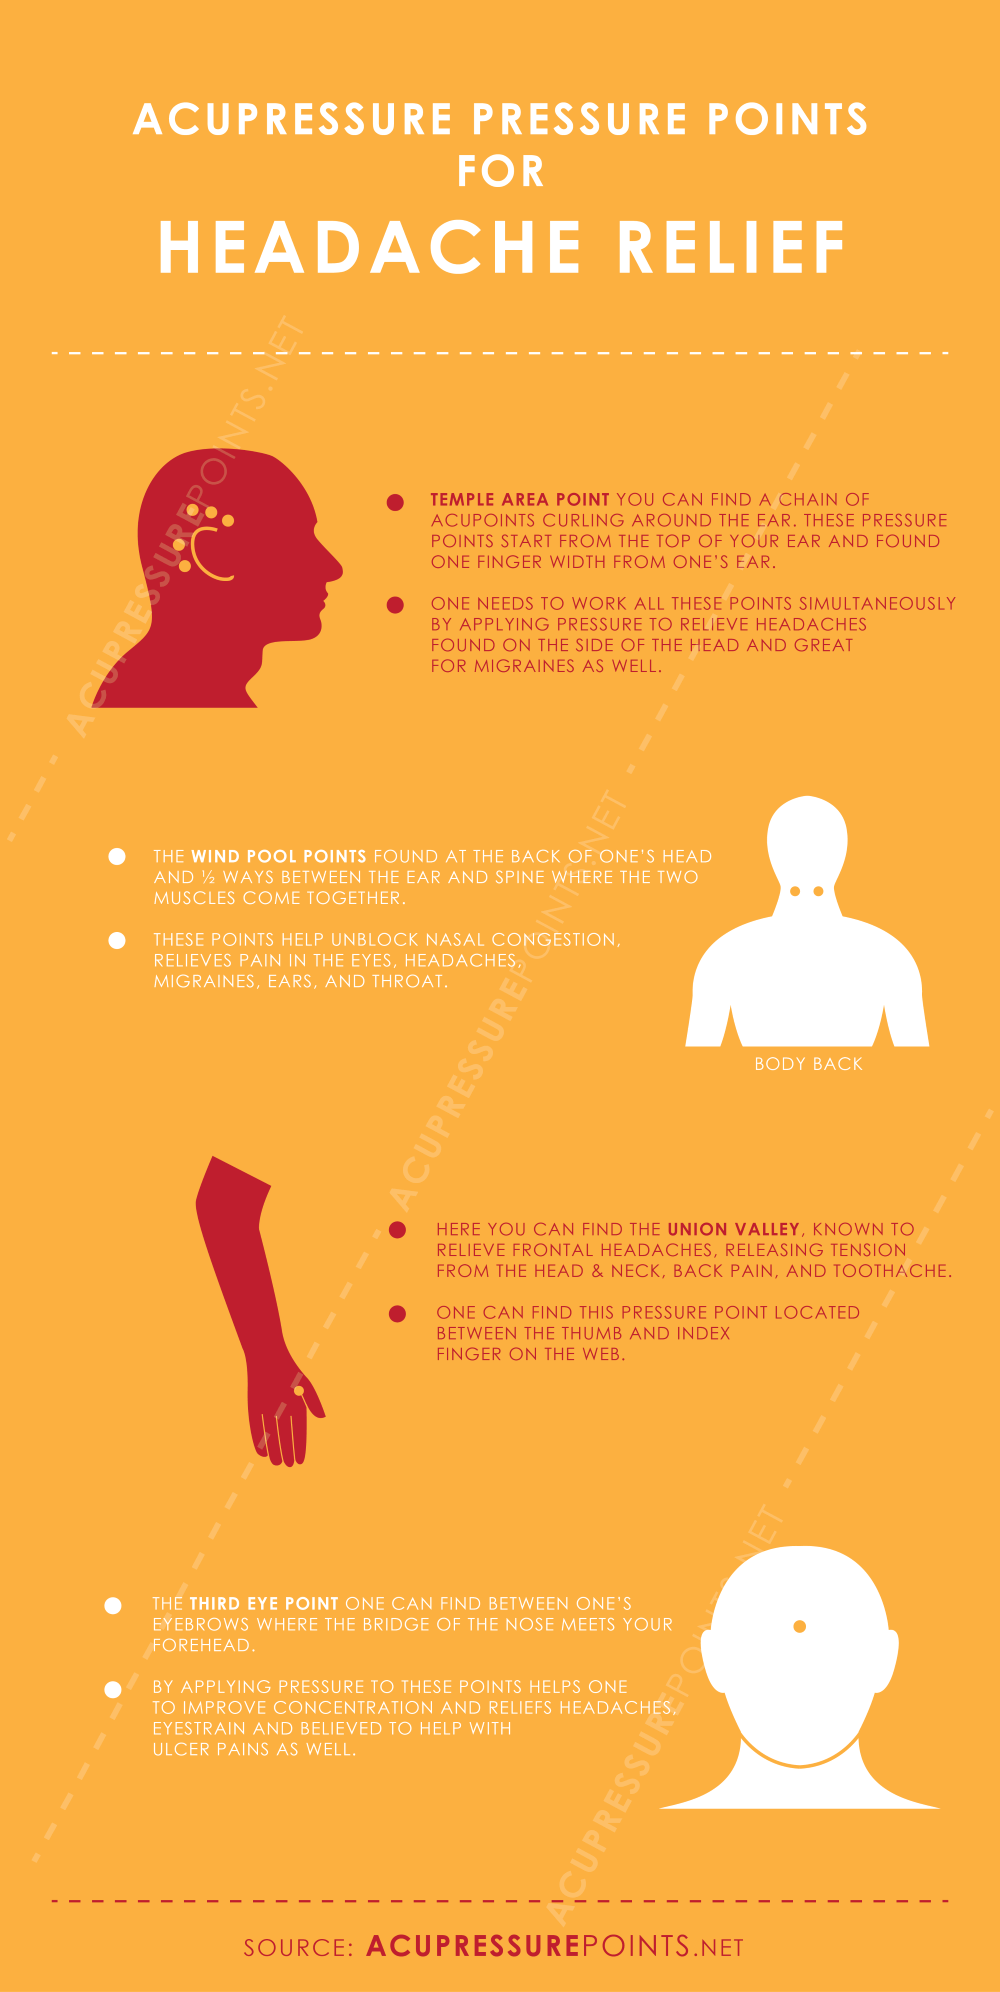 Acupressure Points for Headache & Migraine Relief Infographic